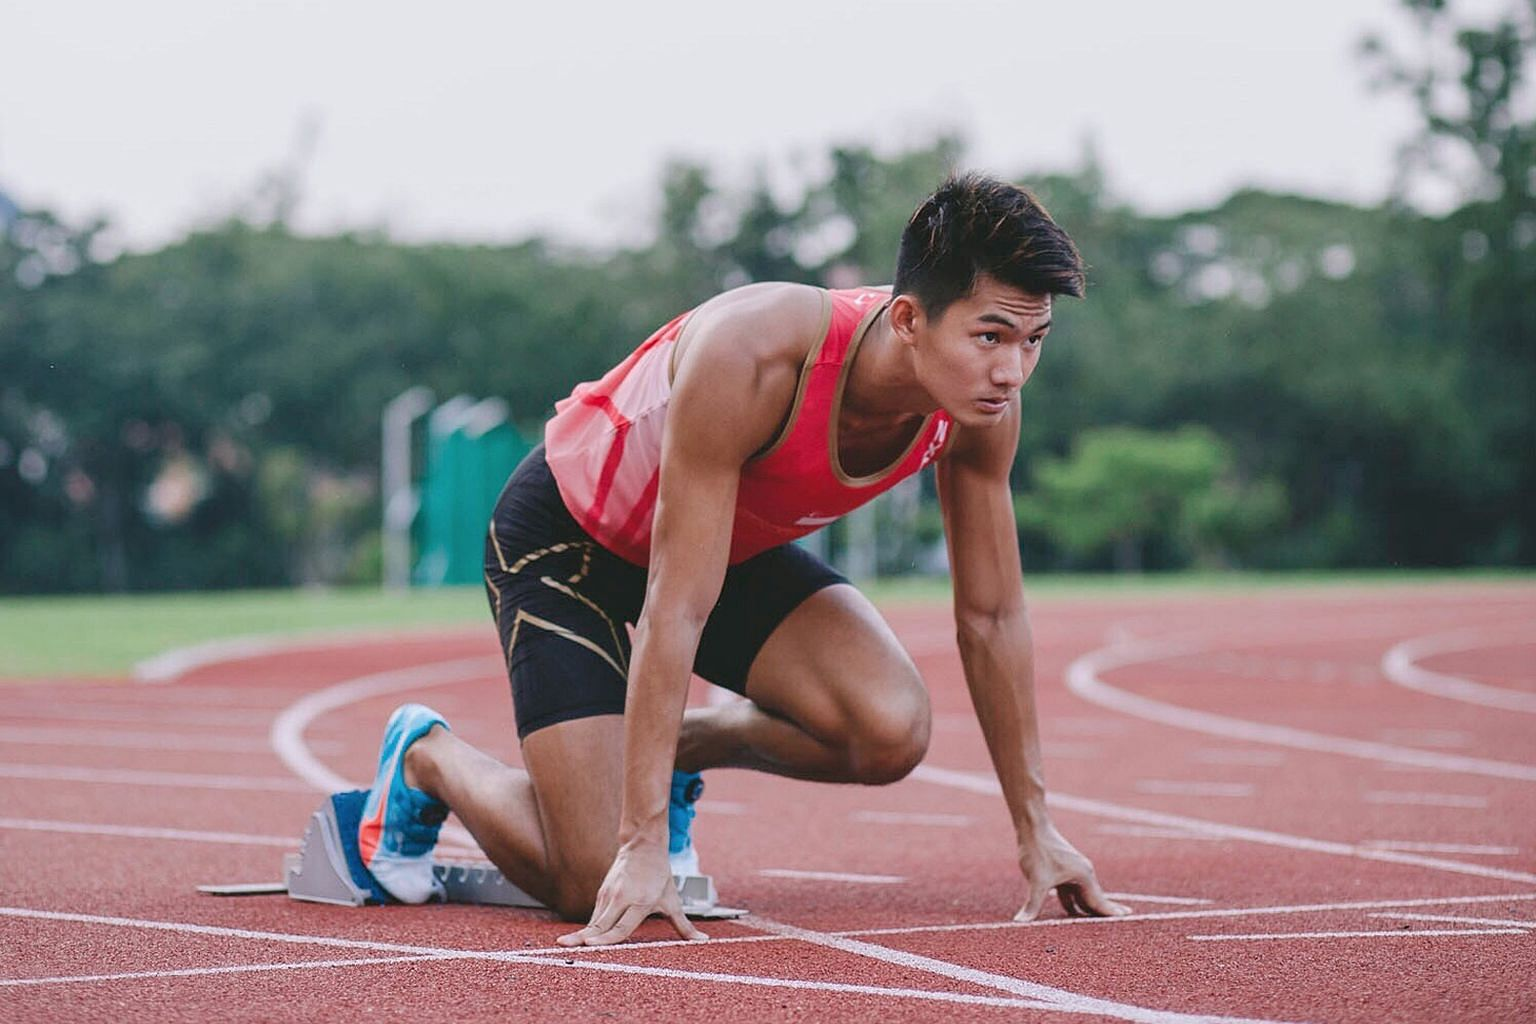 Timothee Yap, 21, is a former 400m hurdler who made the switch to the 100m and 200m sprint only last year. His personal best is 10.62 seconds set in Portugal two weeks ago.